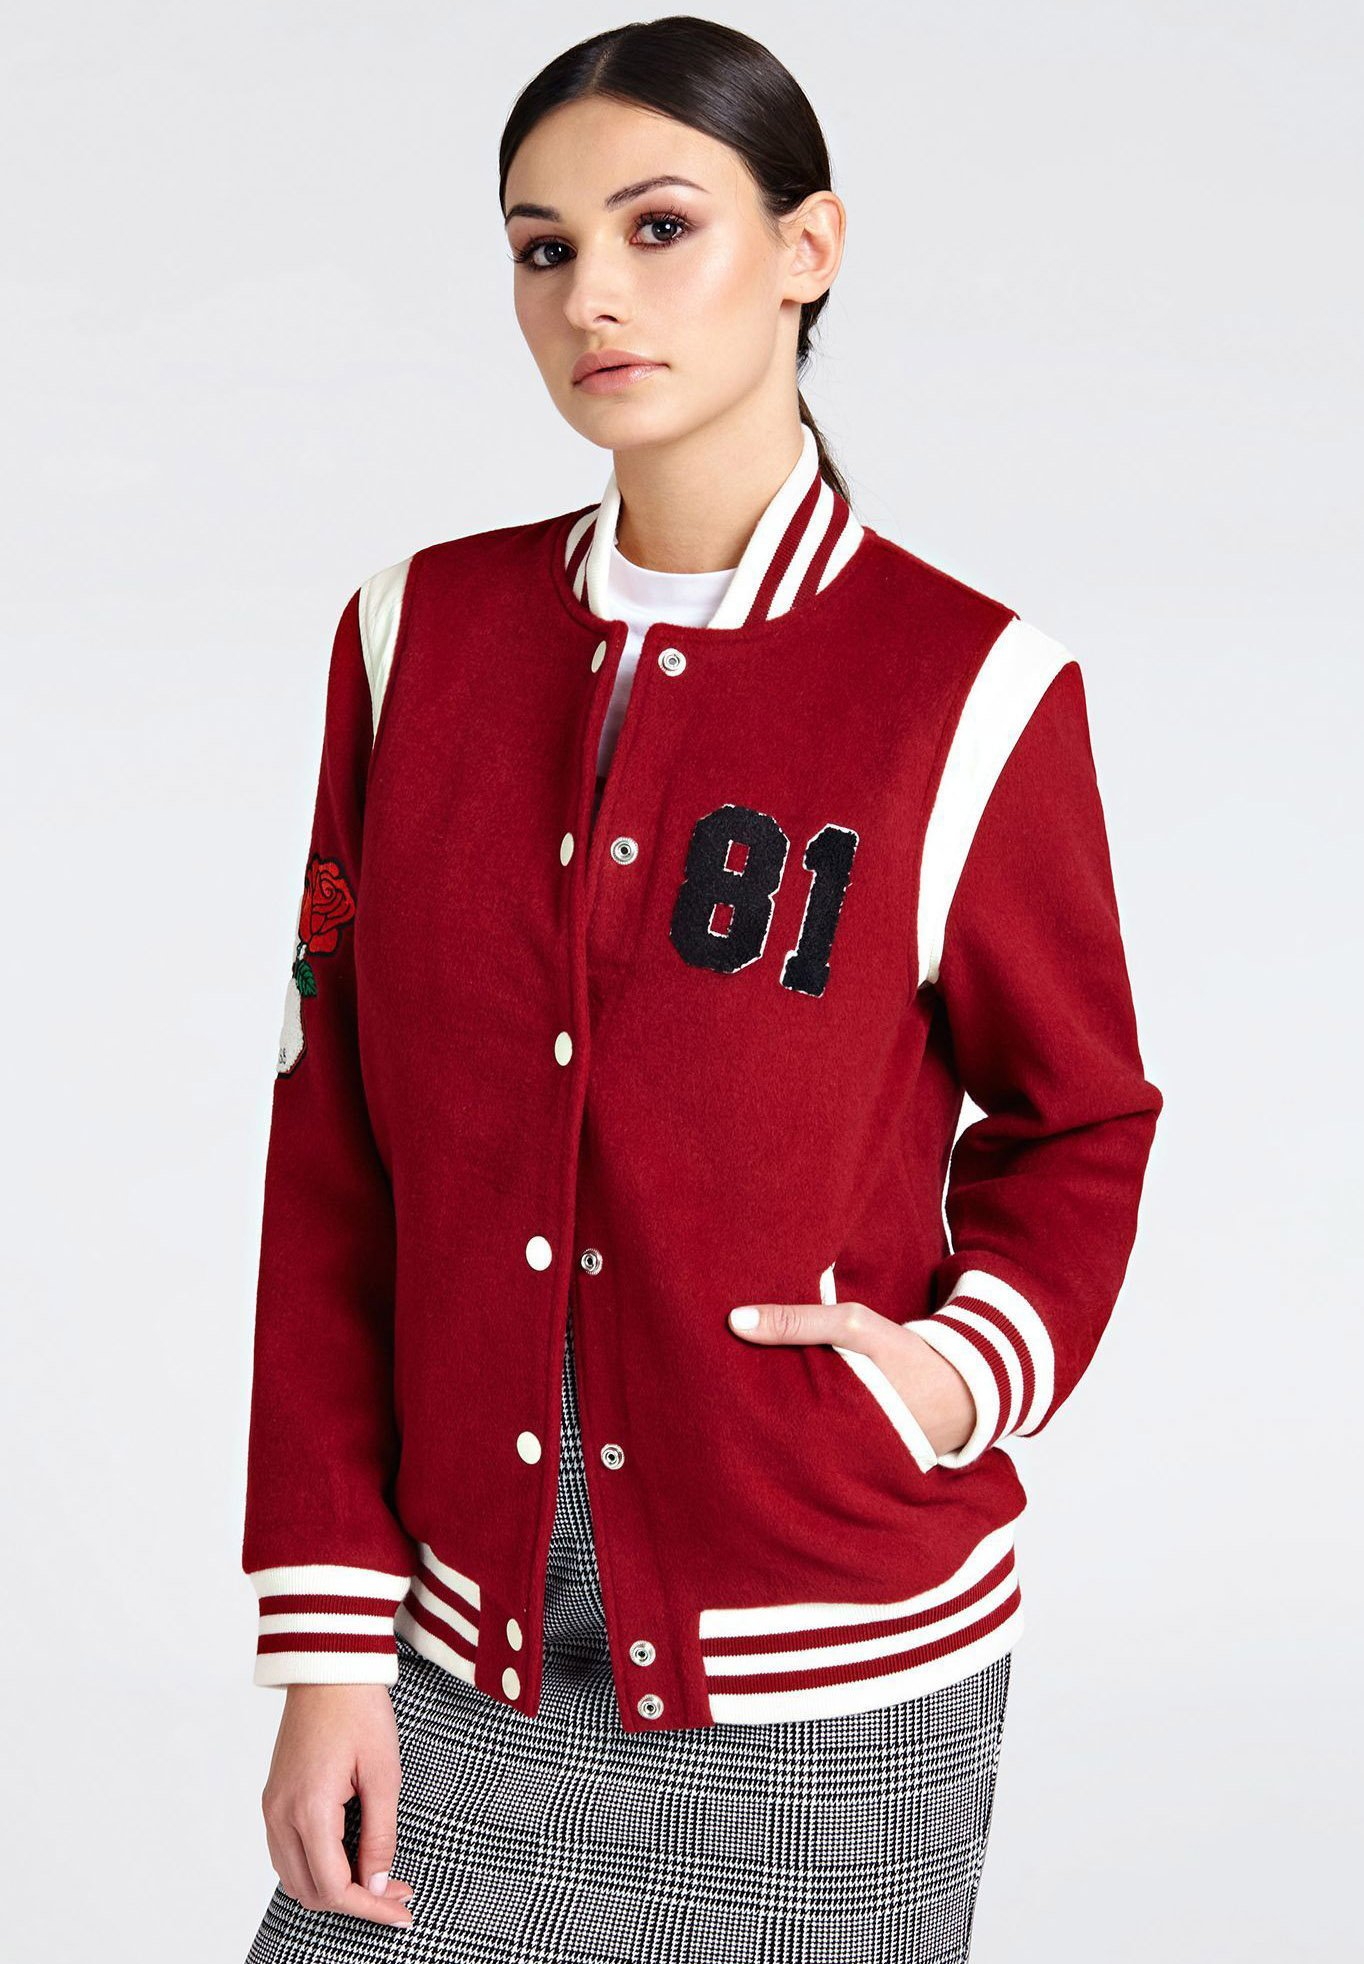 Red Bomber Guess Giubbotto Giubbotto Red Bomber Giubbotto Red Guess Bomber Guess Bomber Giubbotto Guess 4A5jq3LR